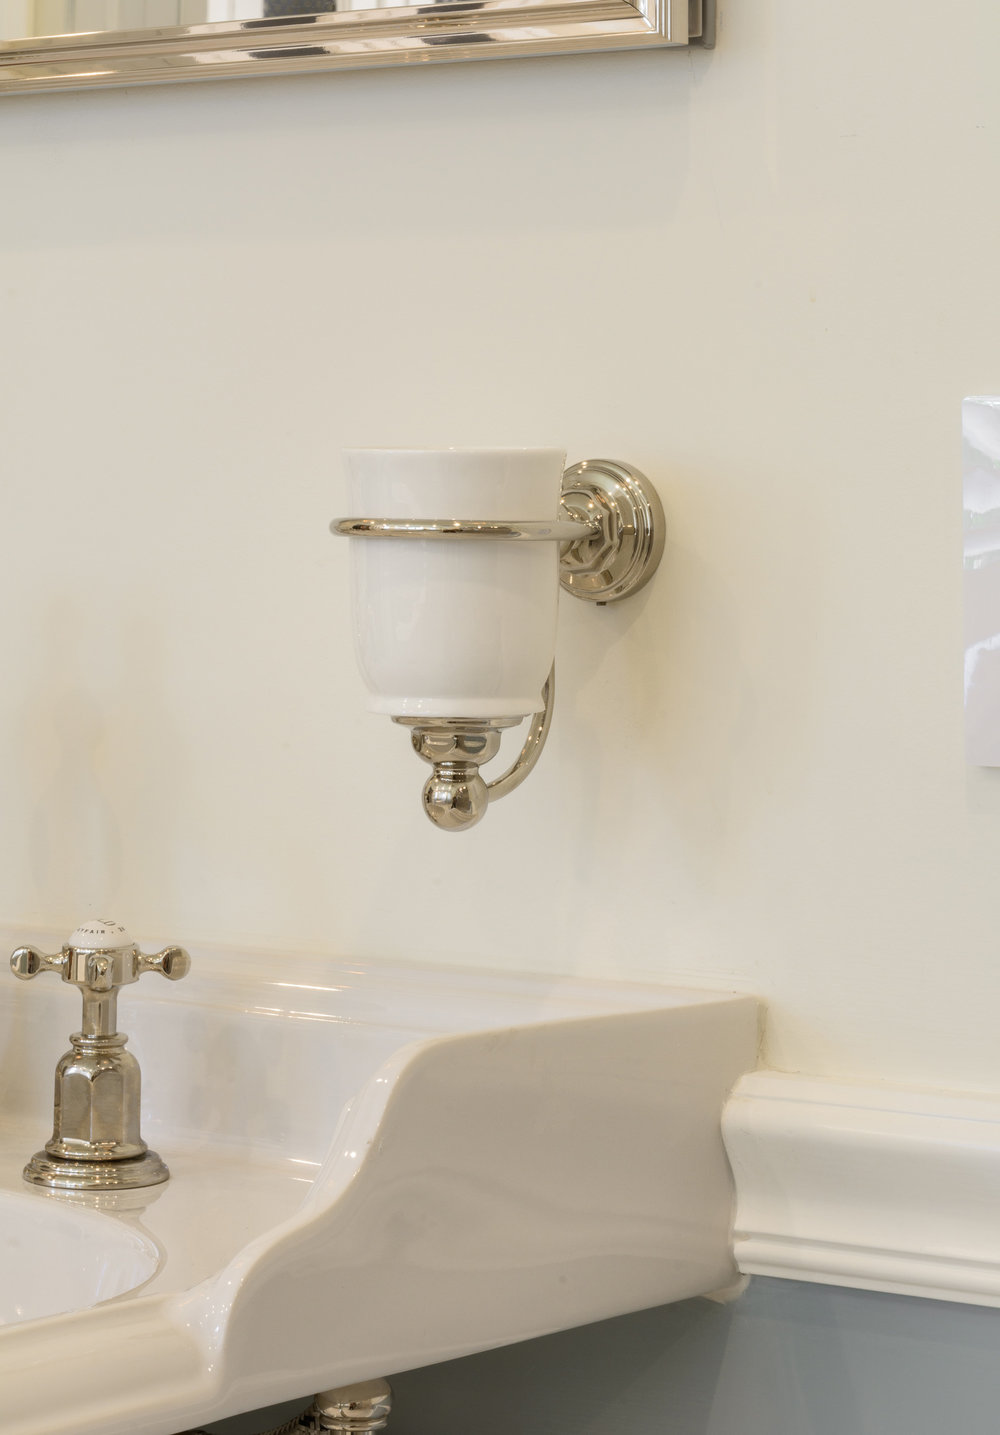 Polished nickel and white ceramic wall-mounted toothbrush holder over console sink